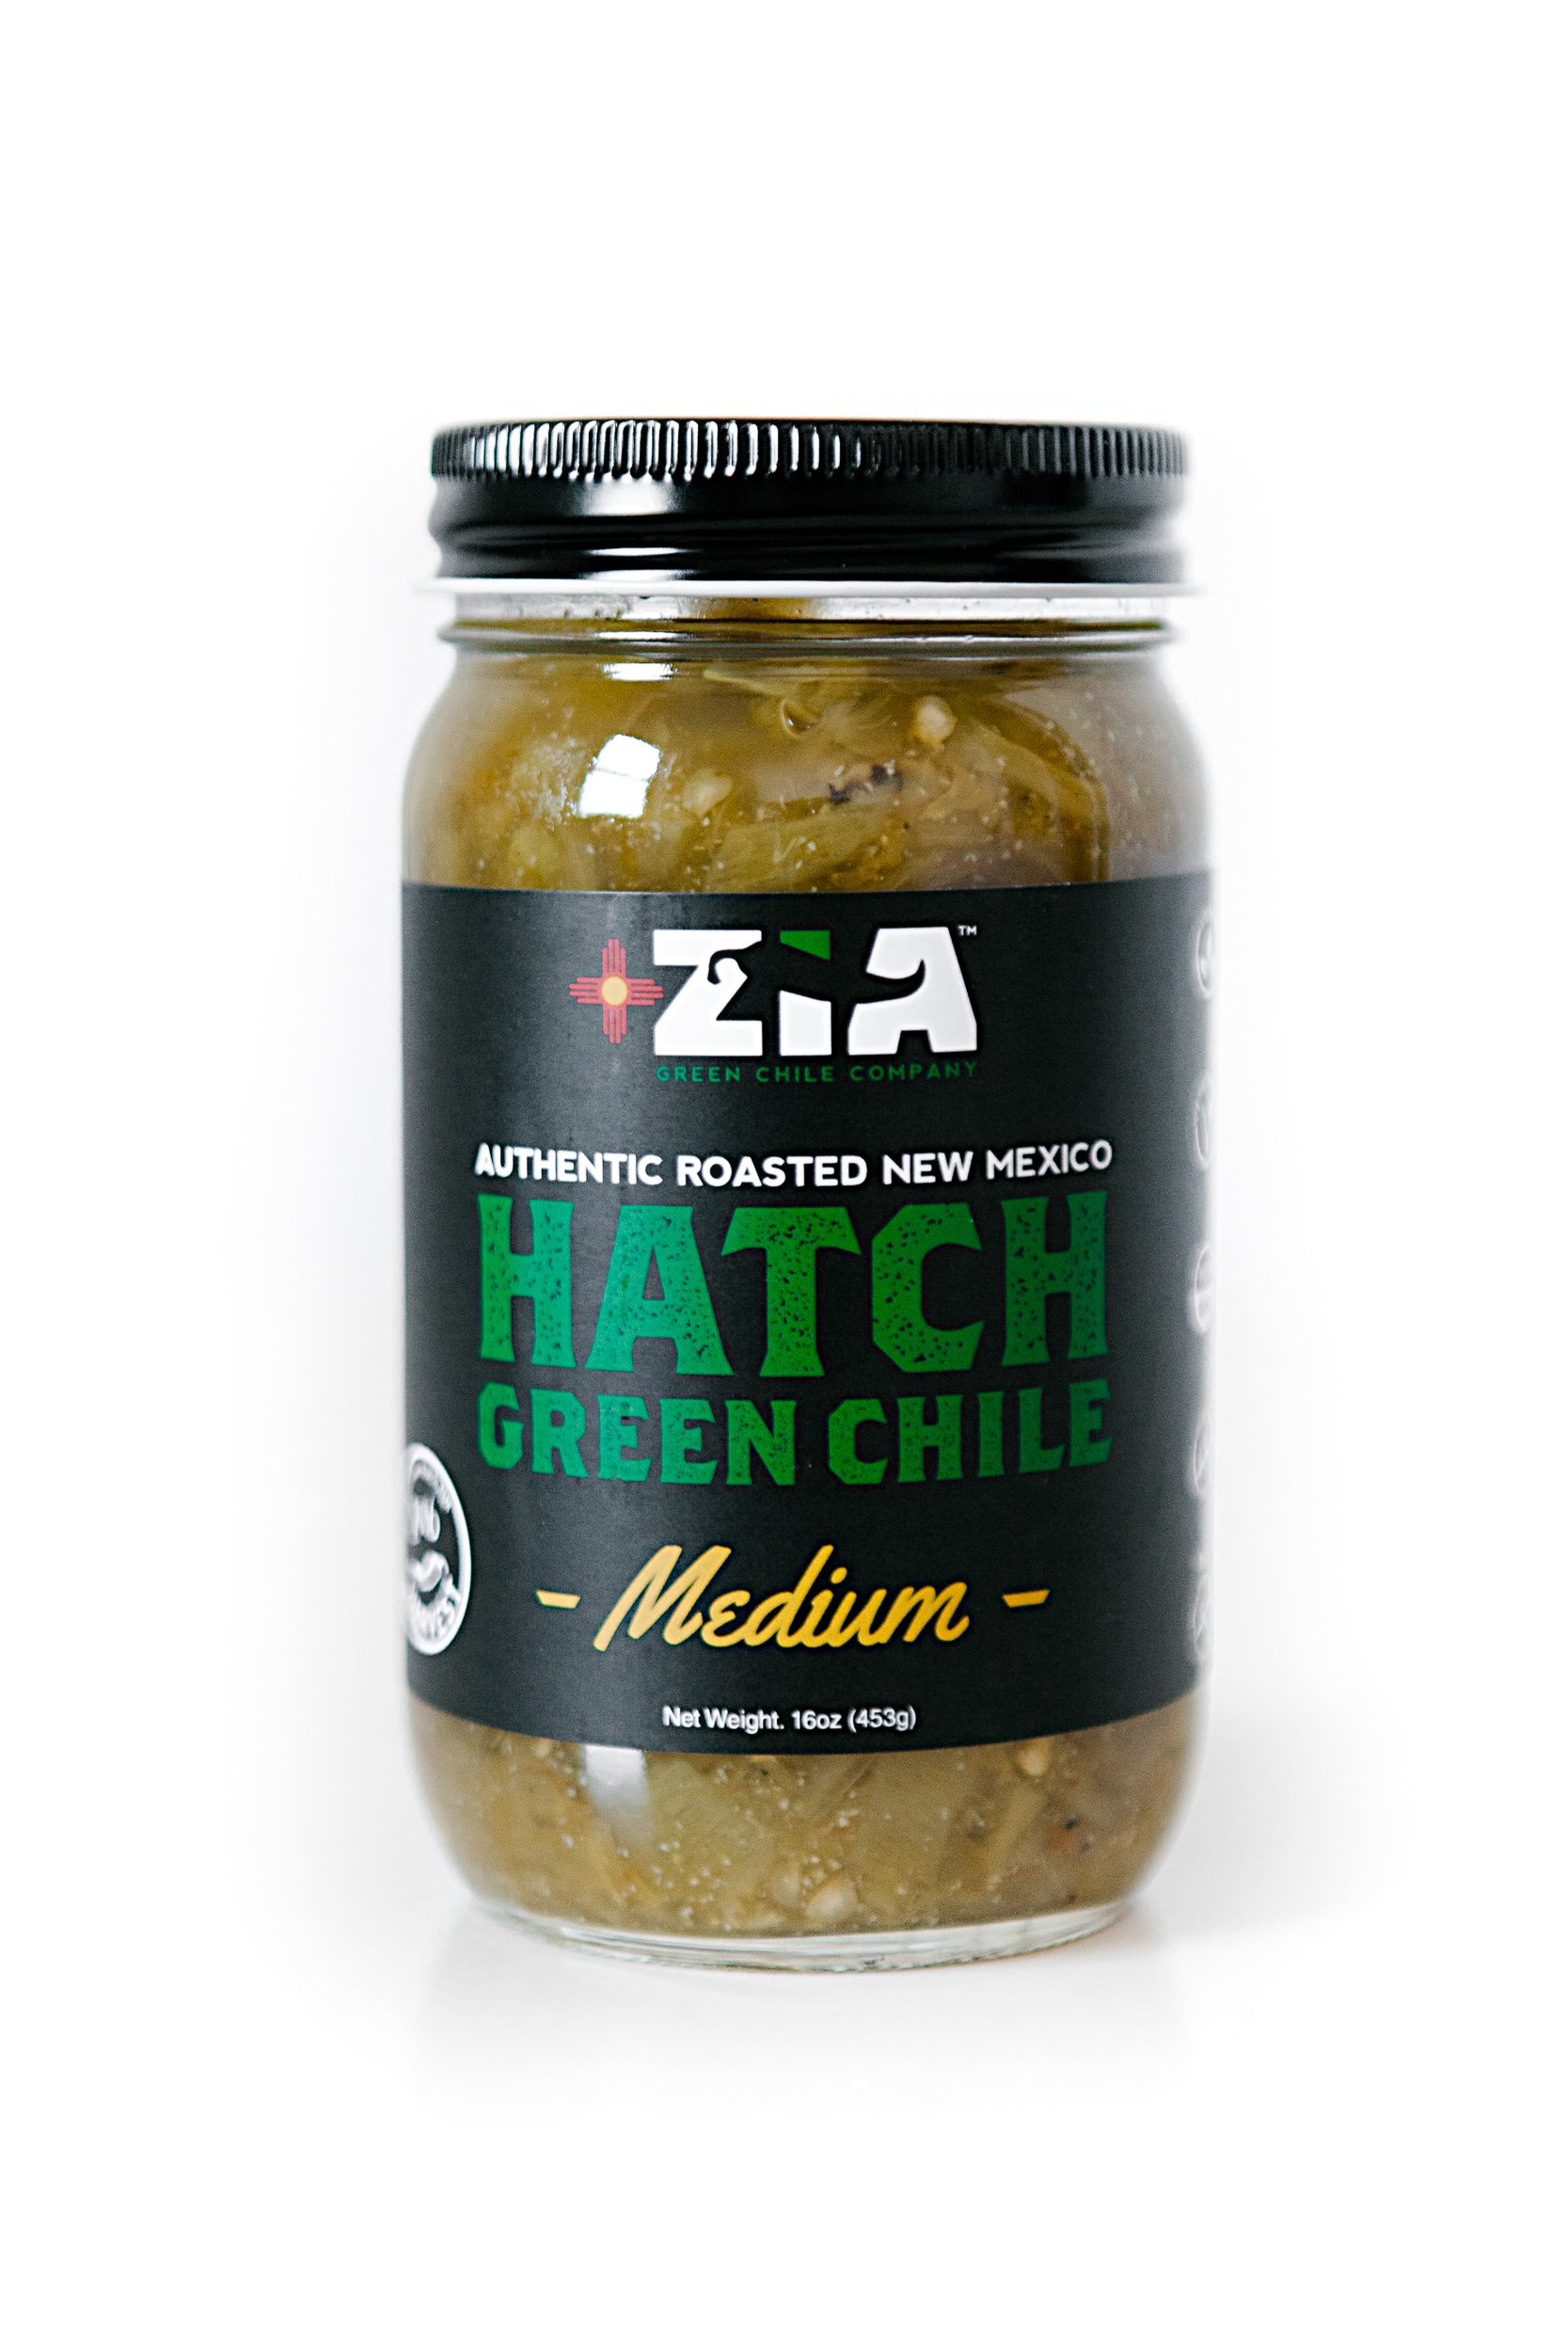 Original New Mexico Hatch Green Chile By Zia Green Chile Company - Delicious Flame-Roasted, Peeled & Diced Southwestern Certified Green Peppers For Salsas, Stews & More, Vegan & Gluten-Free - 16oz